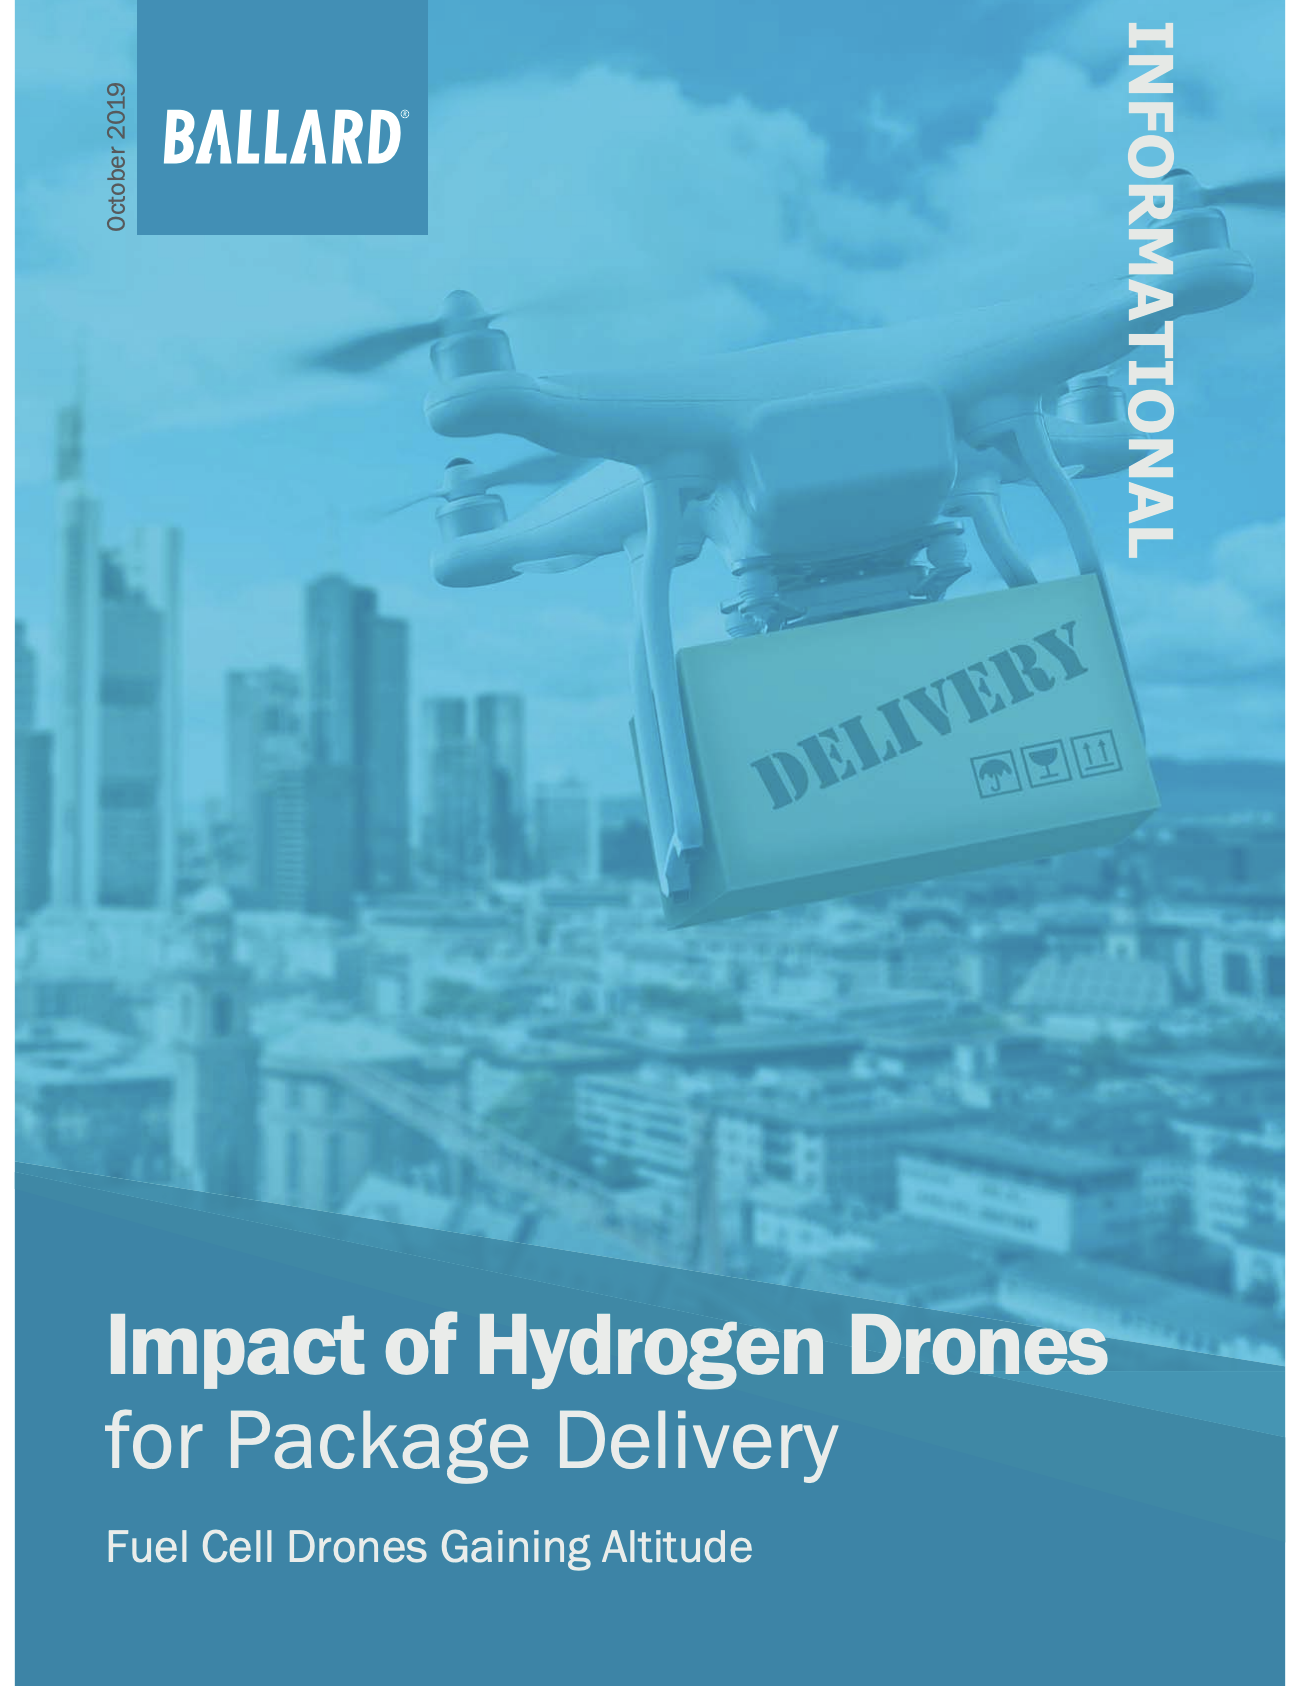 WP-thumbnail-impact-hydrogen-drones-package-delivery